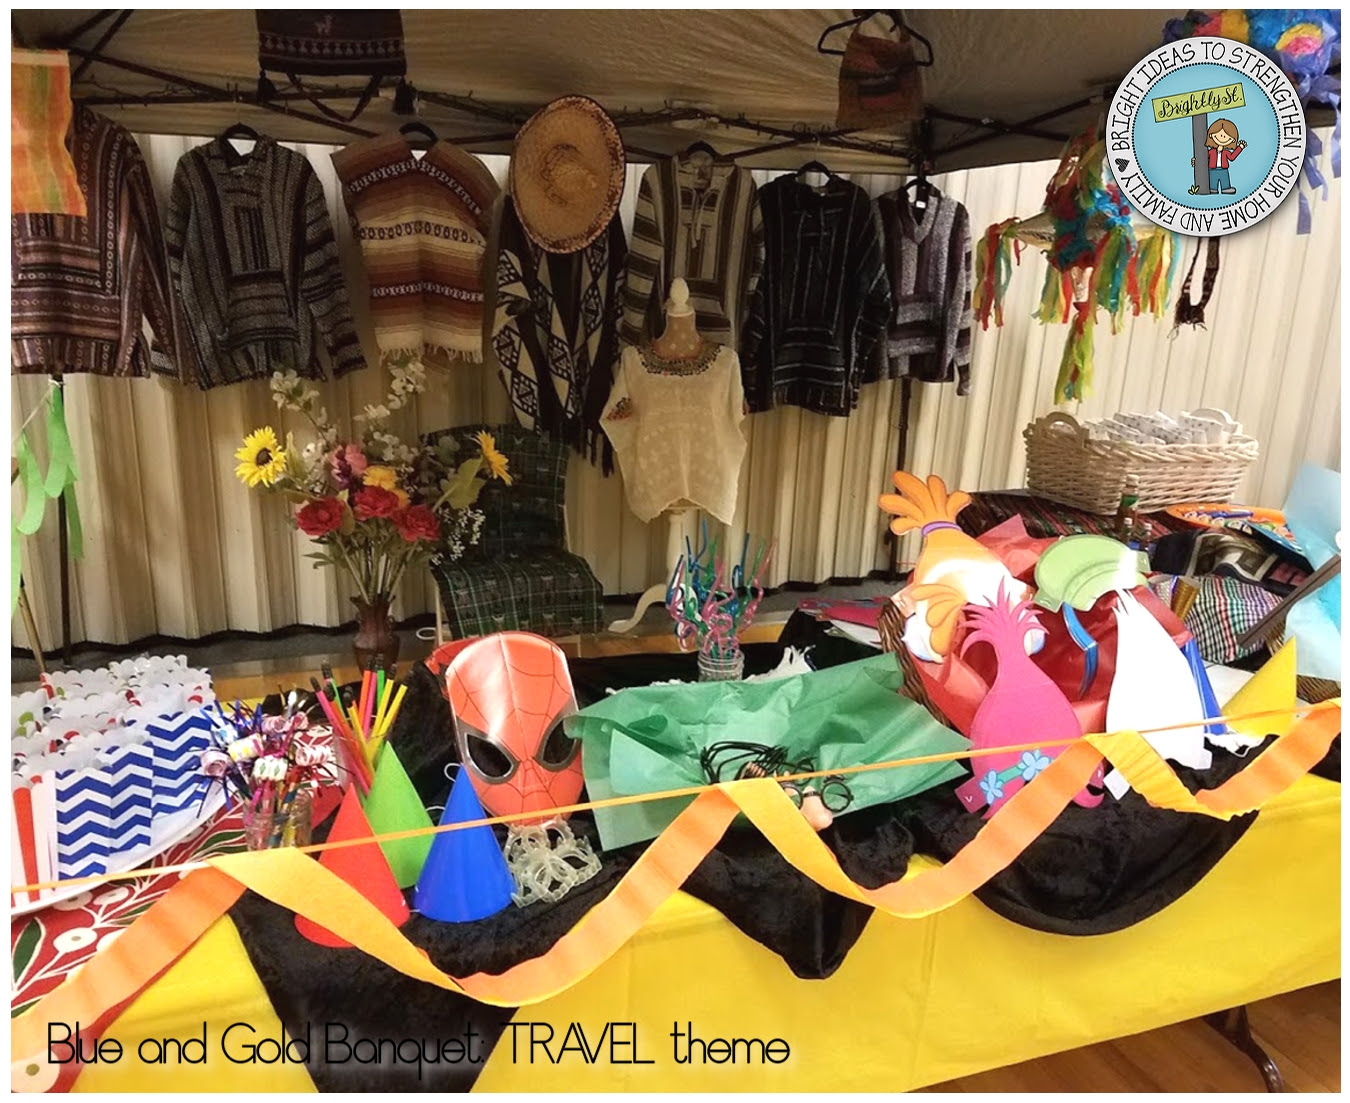 Cub Scouts Blue And Gold Banquet Travel Theme Brightly Street